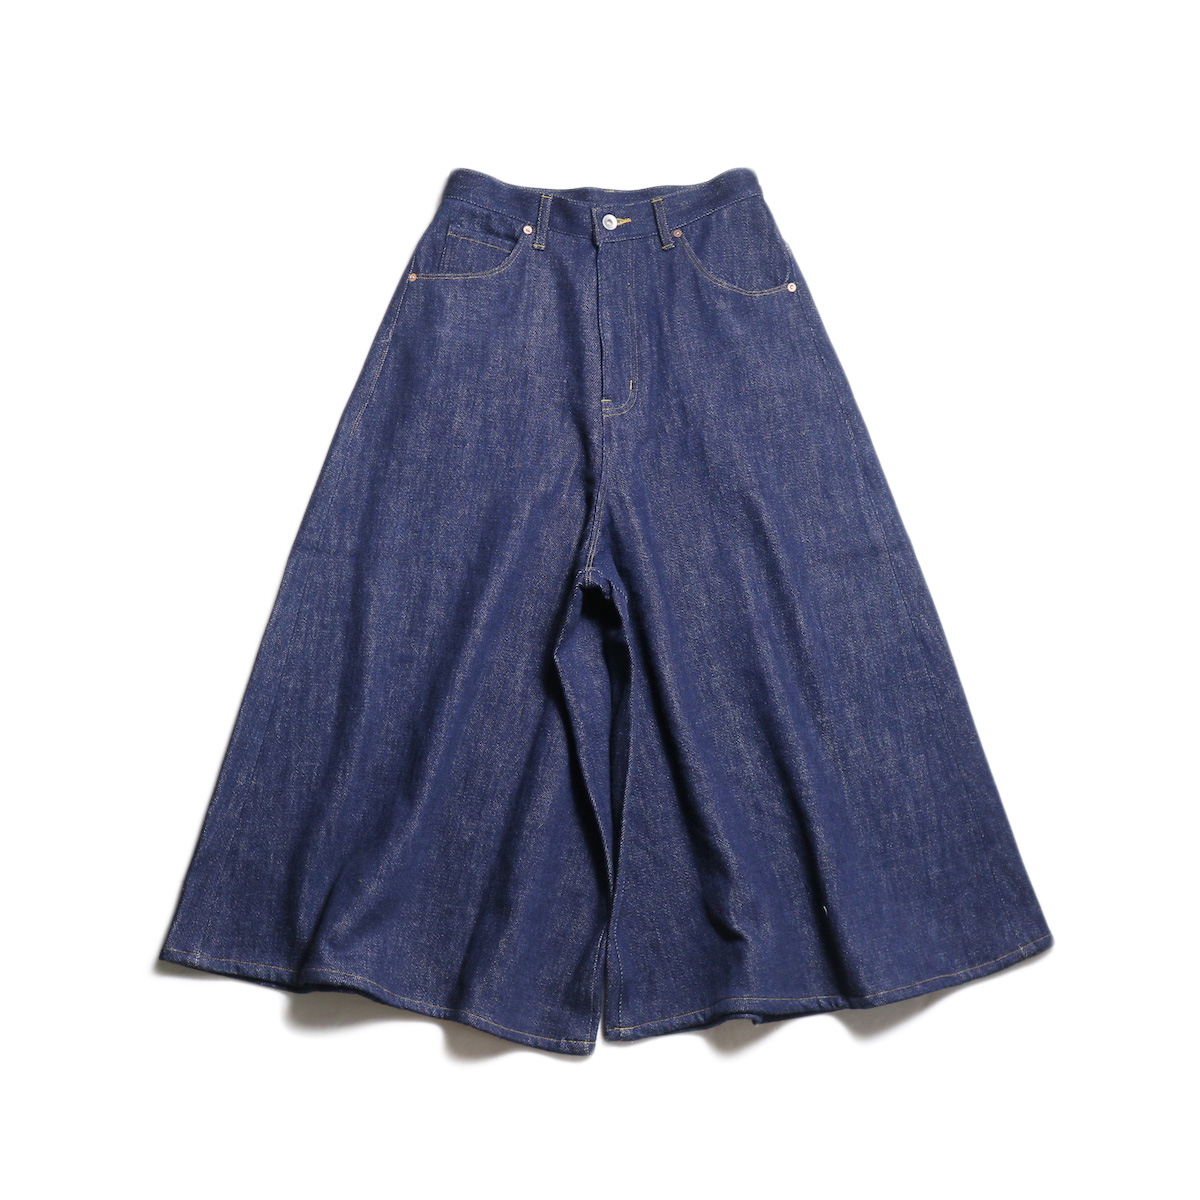 Needles / Divided Jean Skirt -15oz Loose Denim (Indigo)